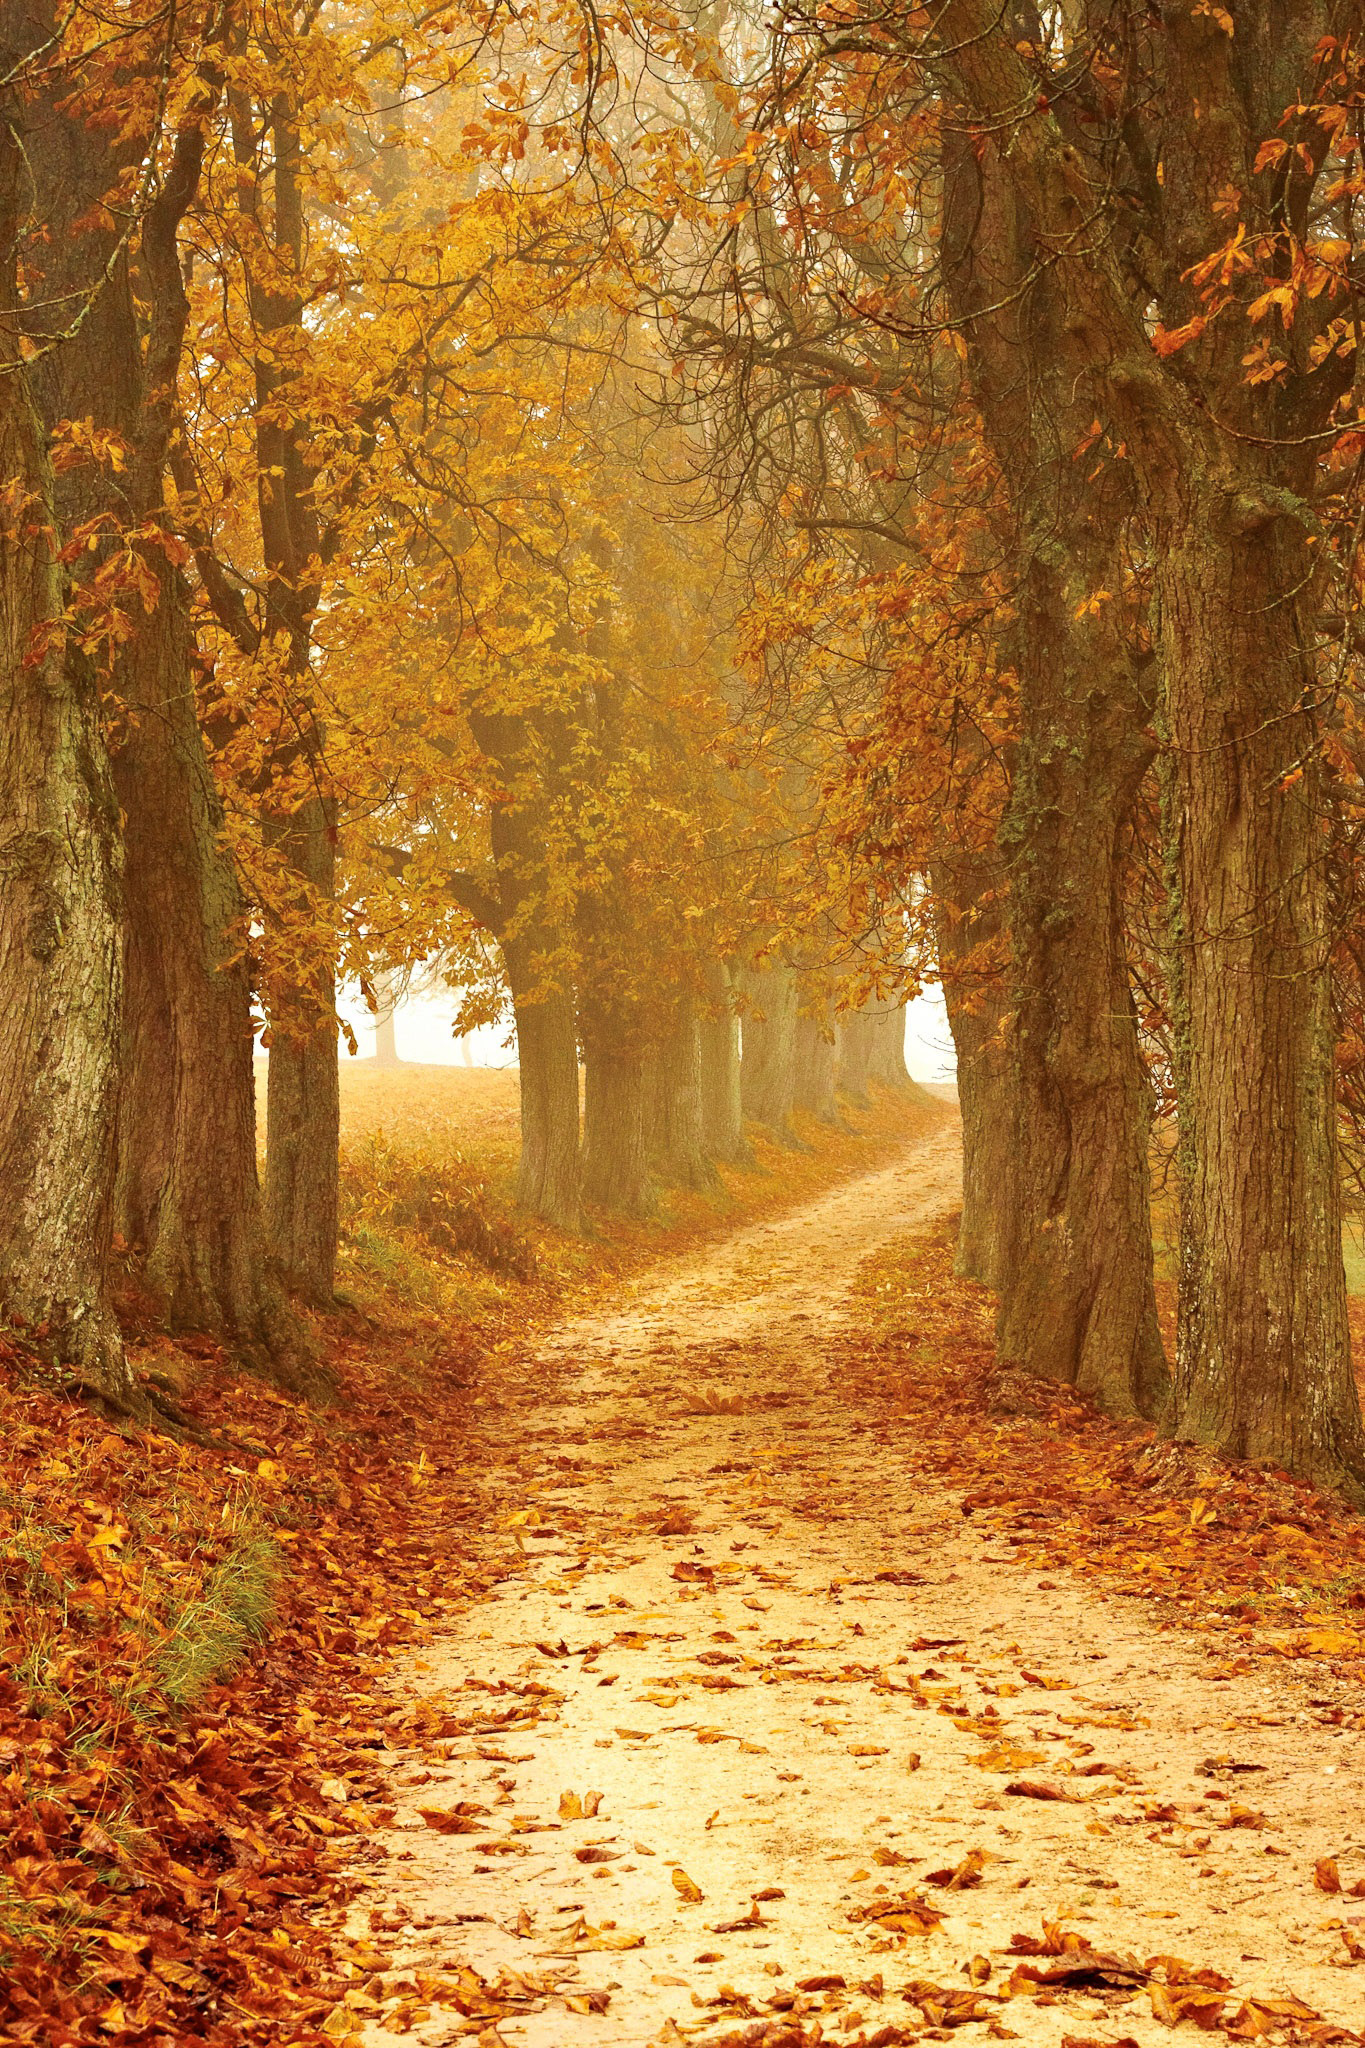 Golden Path In Autumn Between The Trees Image